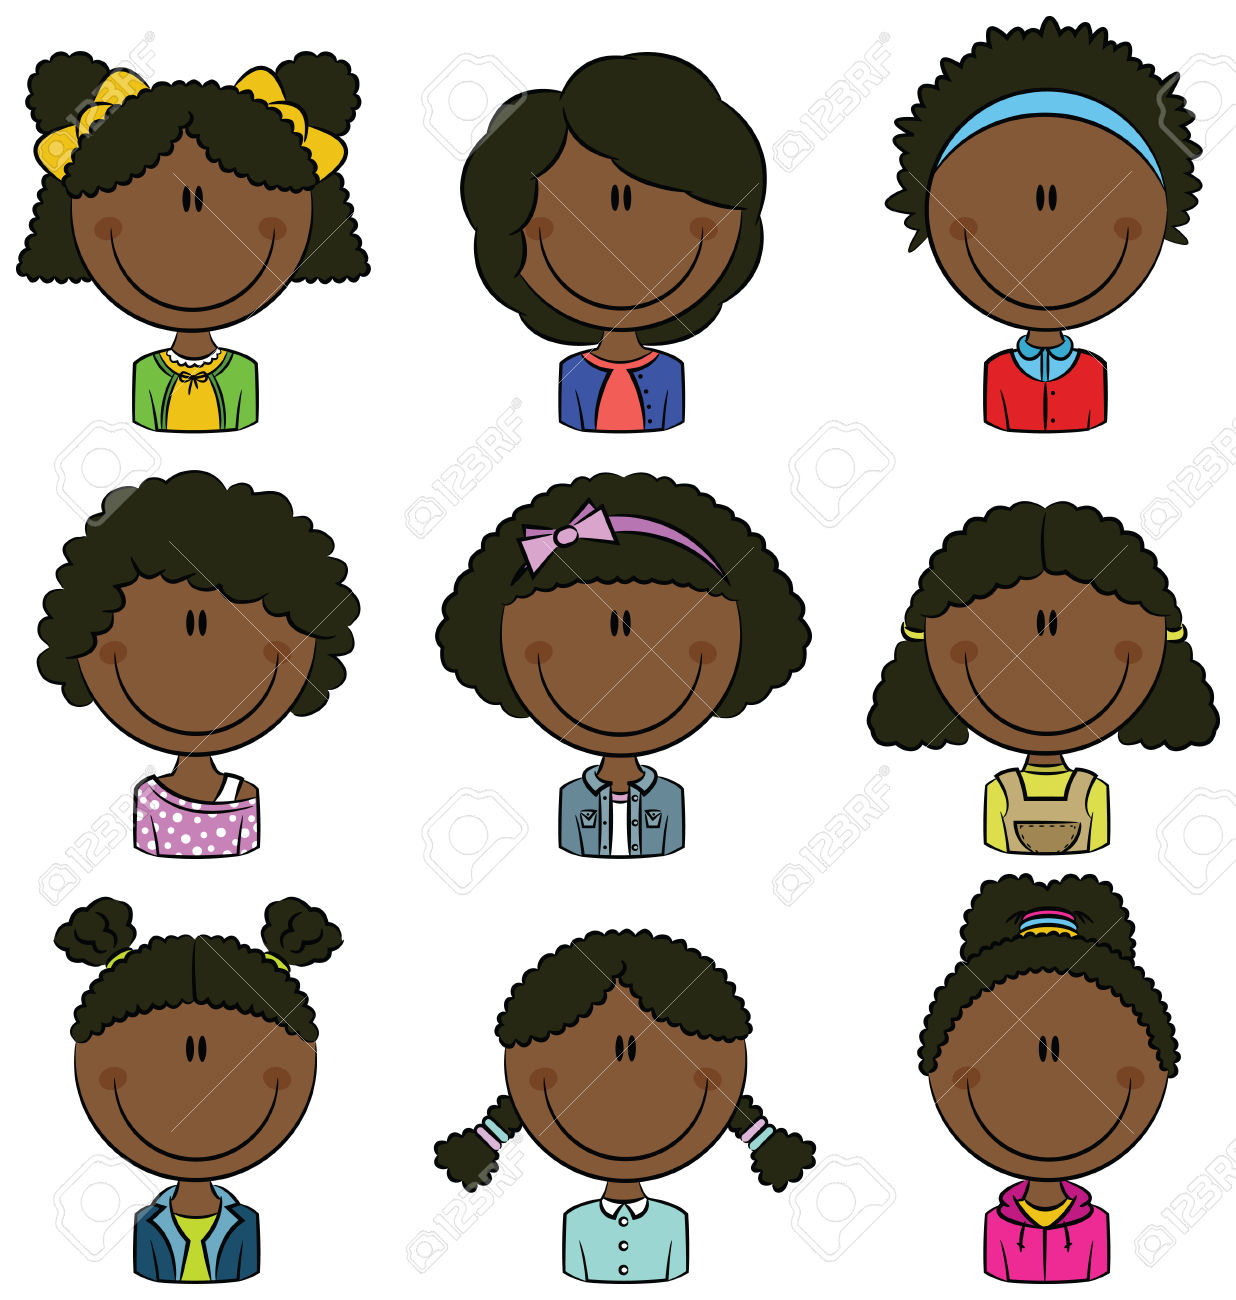 african american clip art free clipart panda free clipart images rh clipartpanda com african american clip art pictures african american clip art pictures